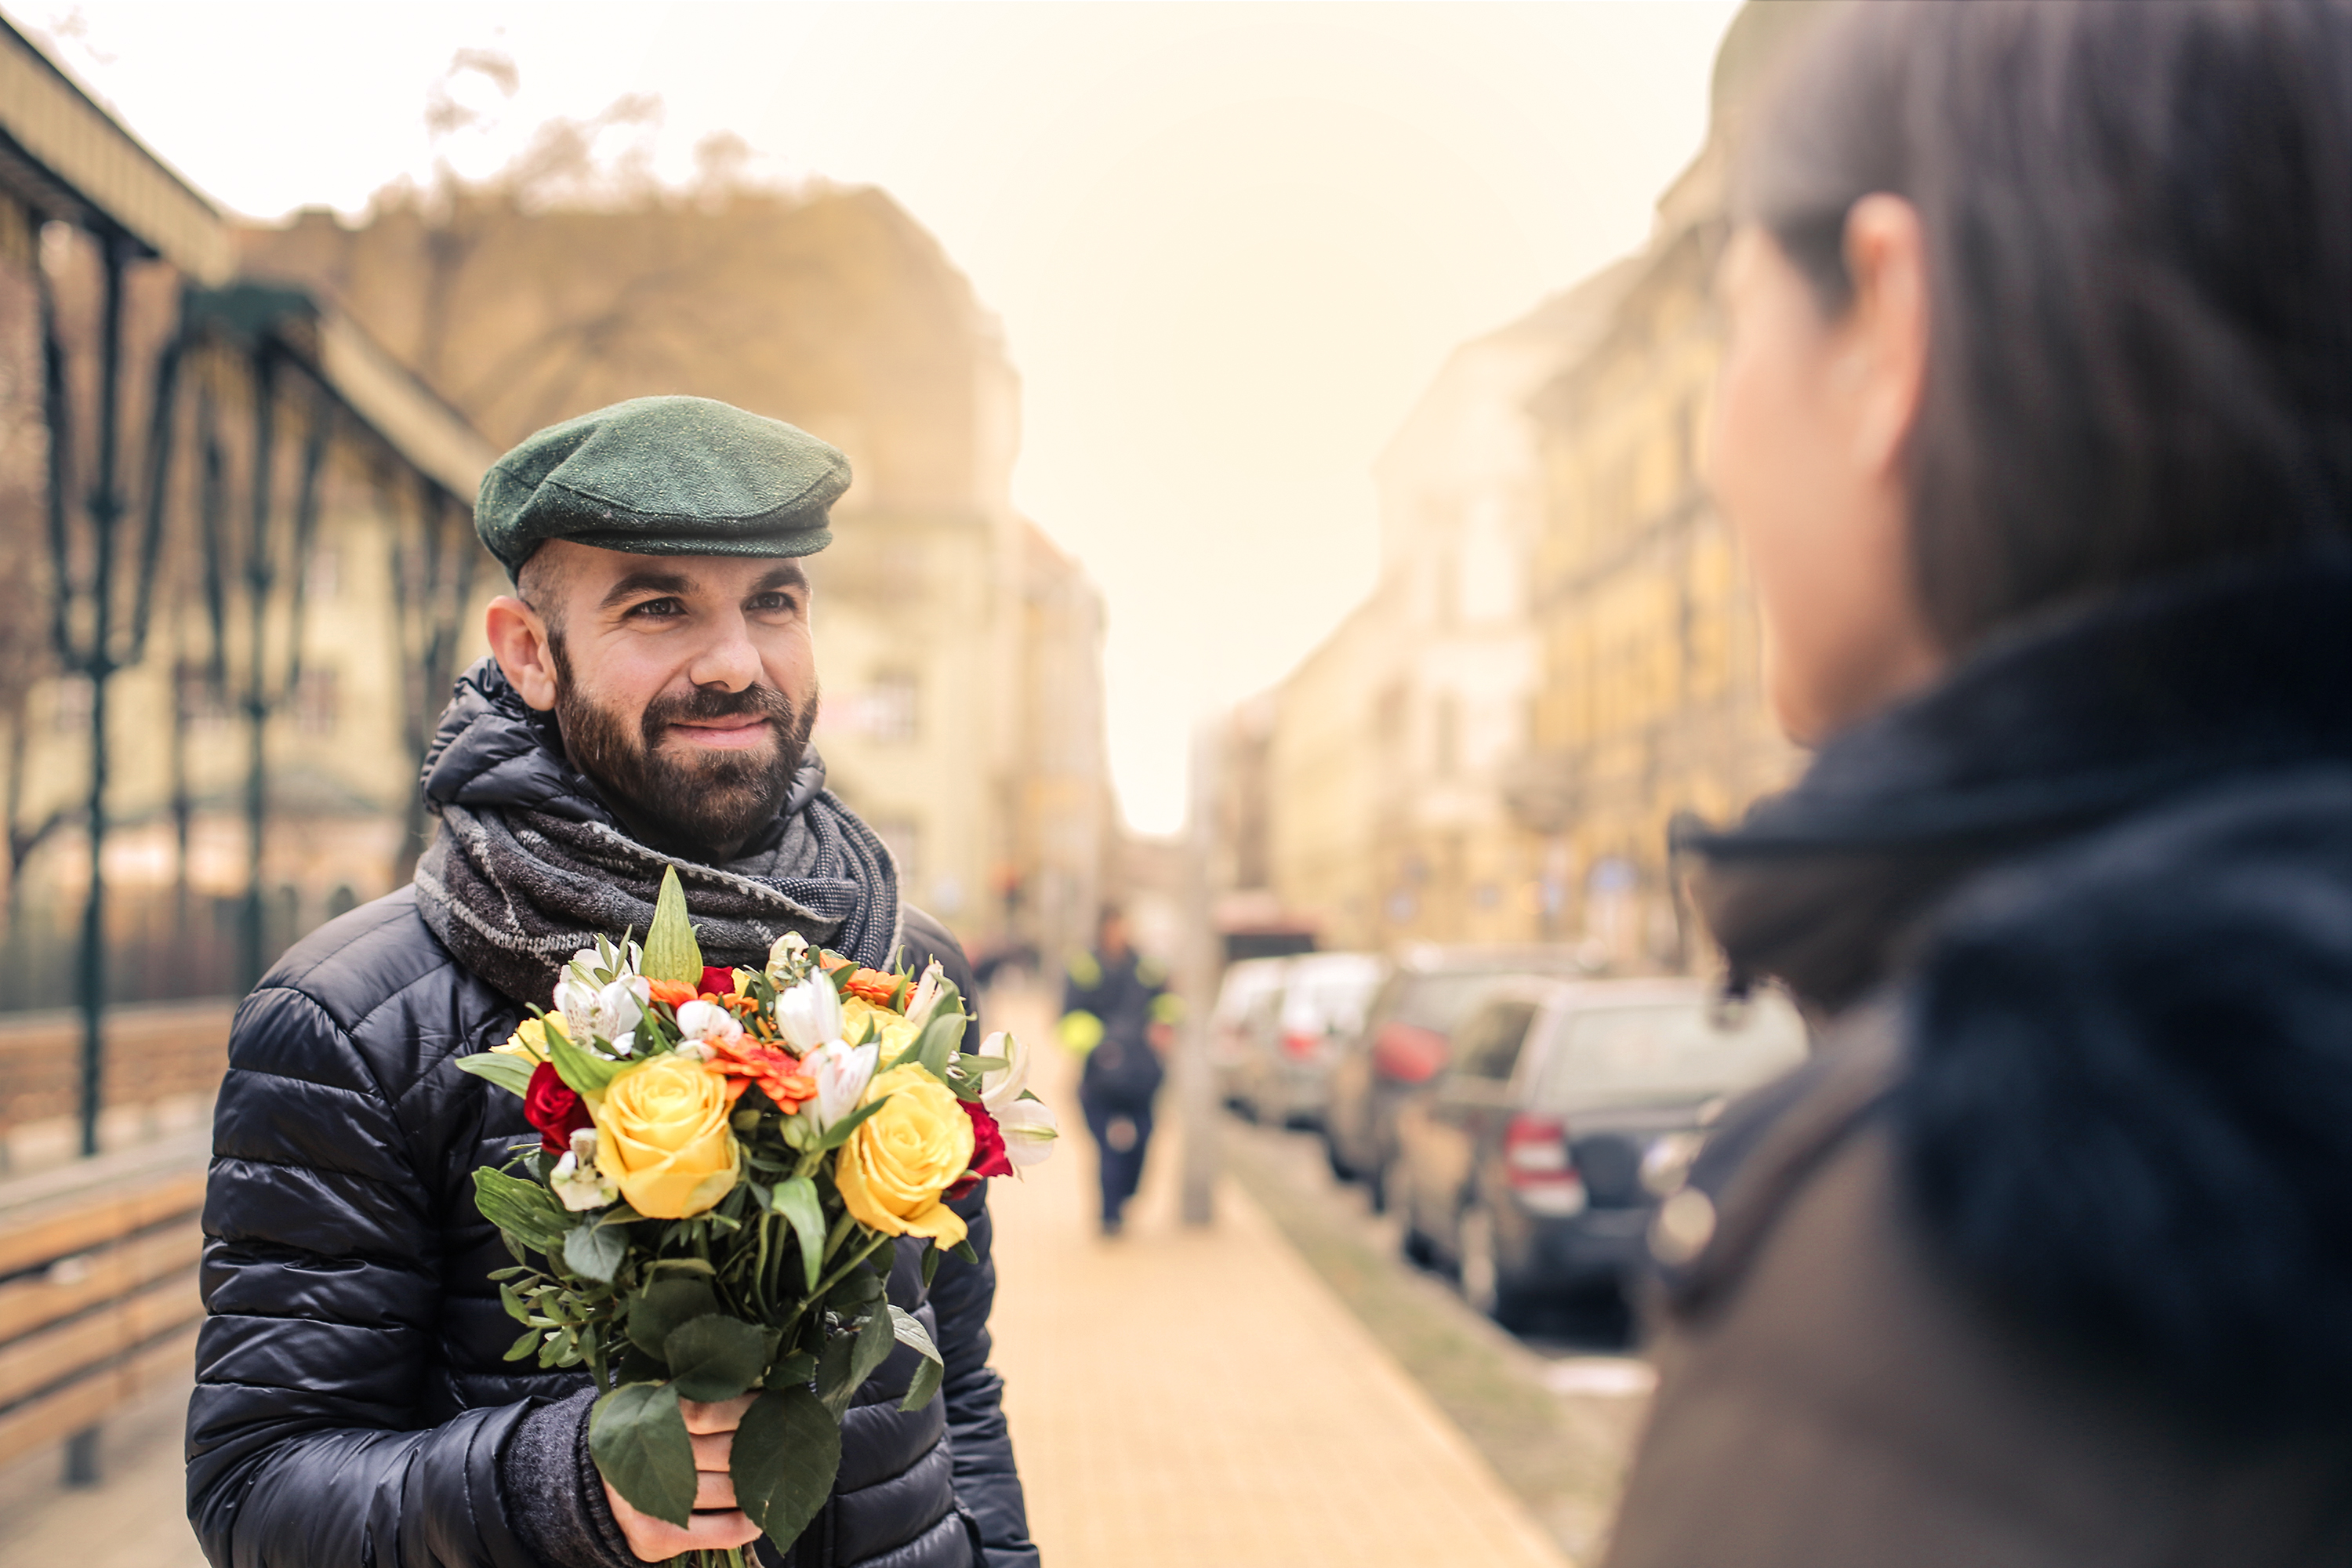 8 of March, a man giving flowers